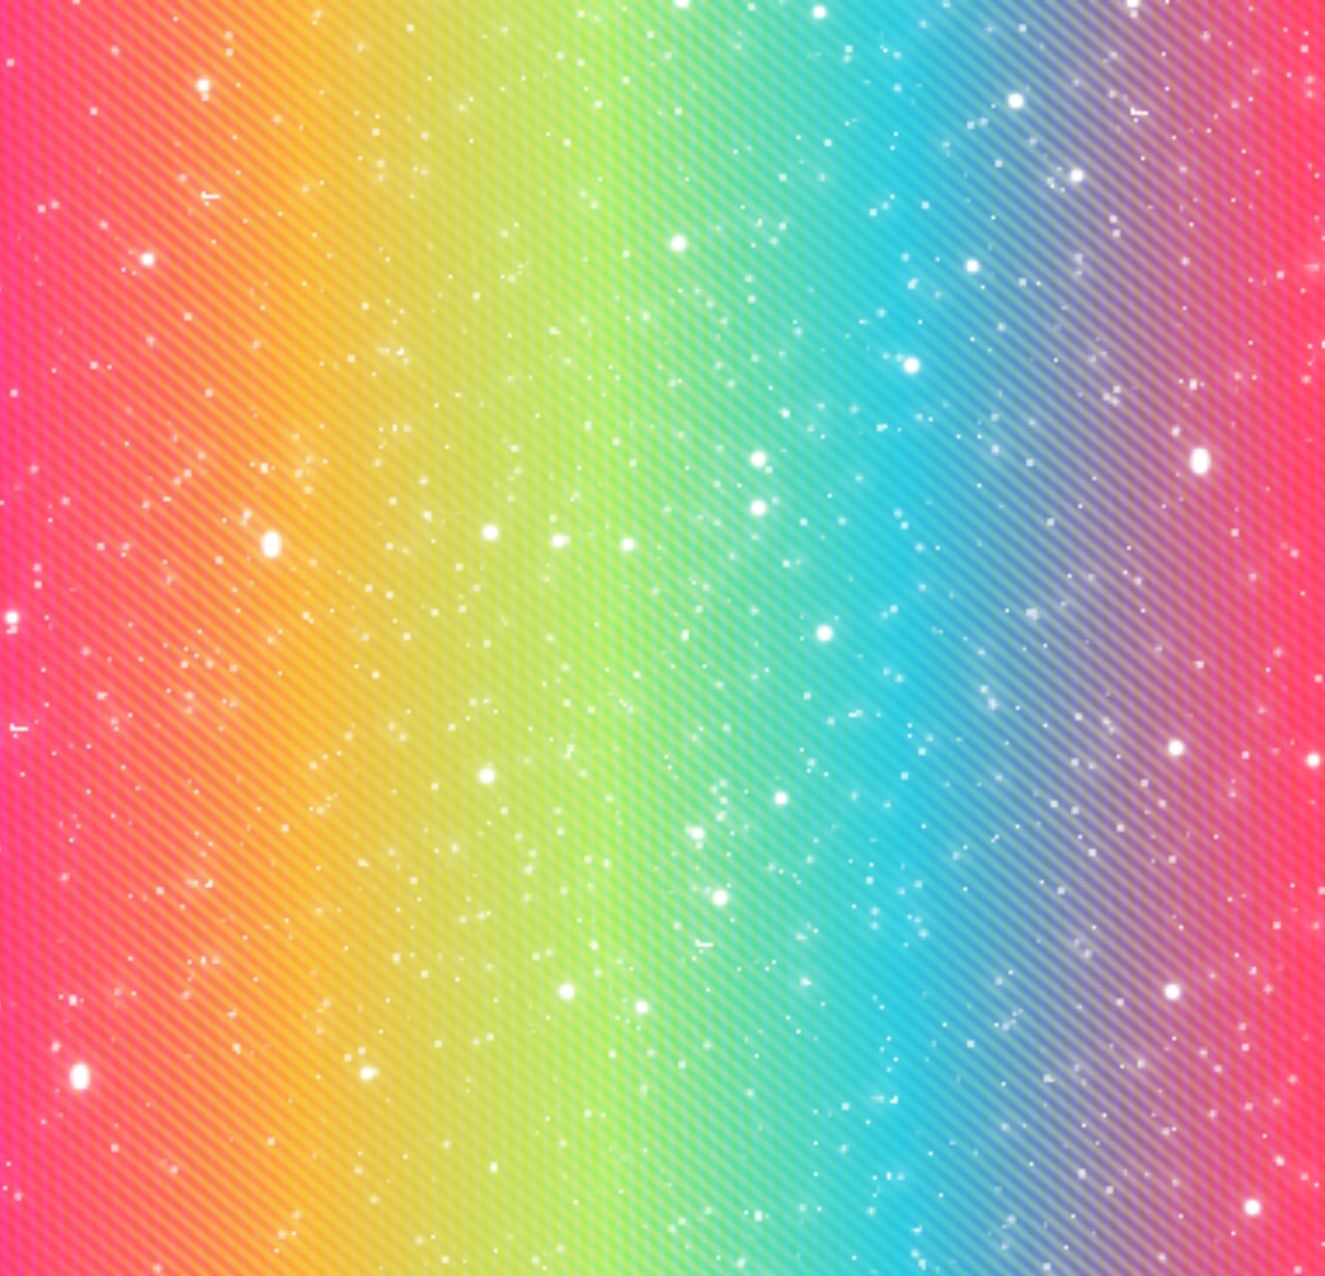 Rainbow Backgrounds Girly Cute Wallpaper For Phone Rainbow Wallpaper